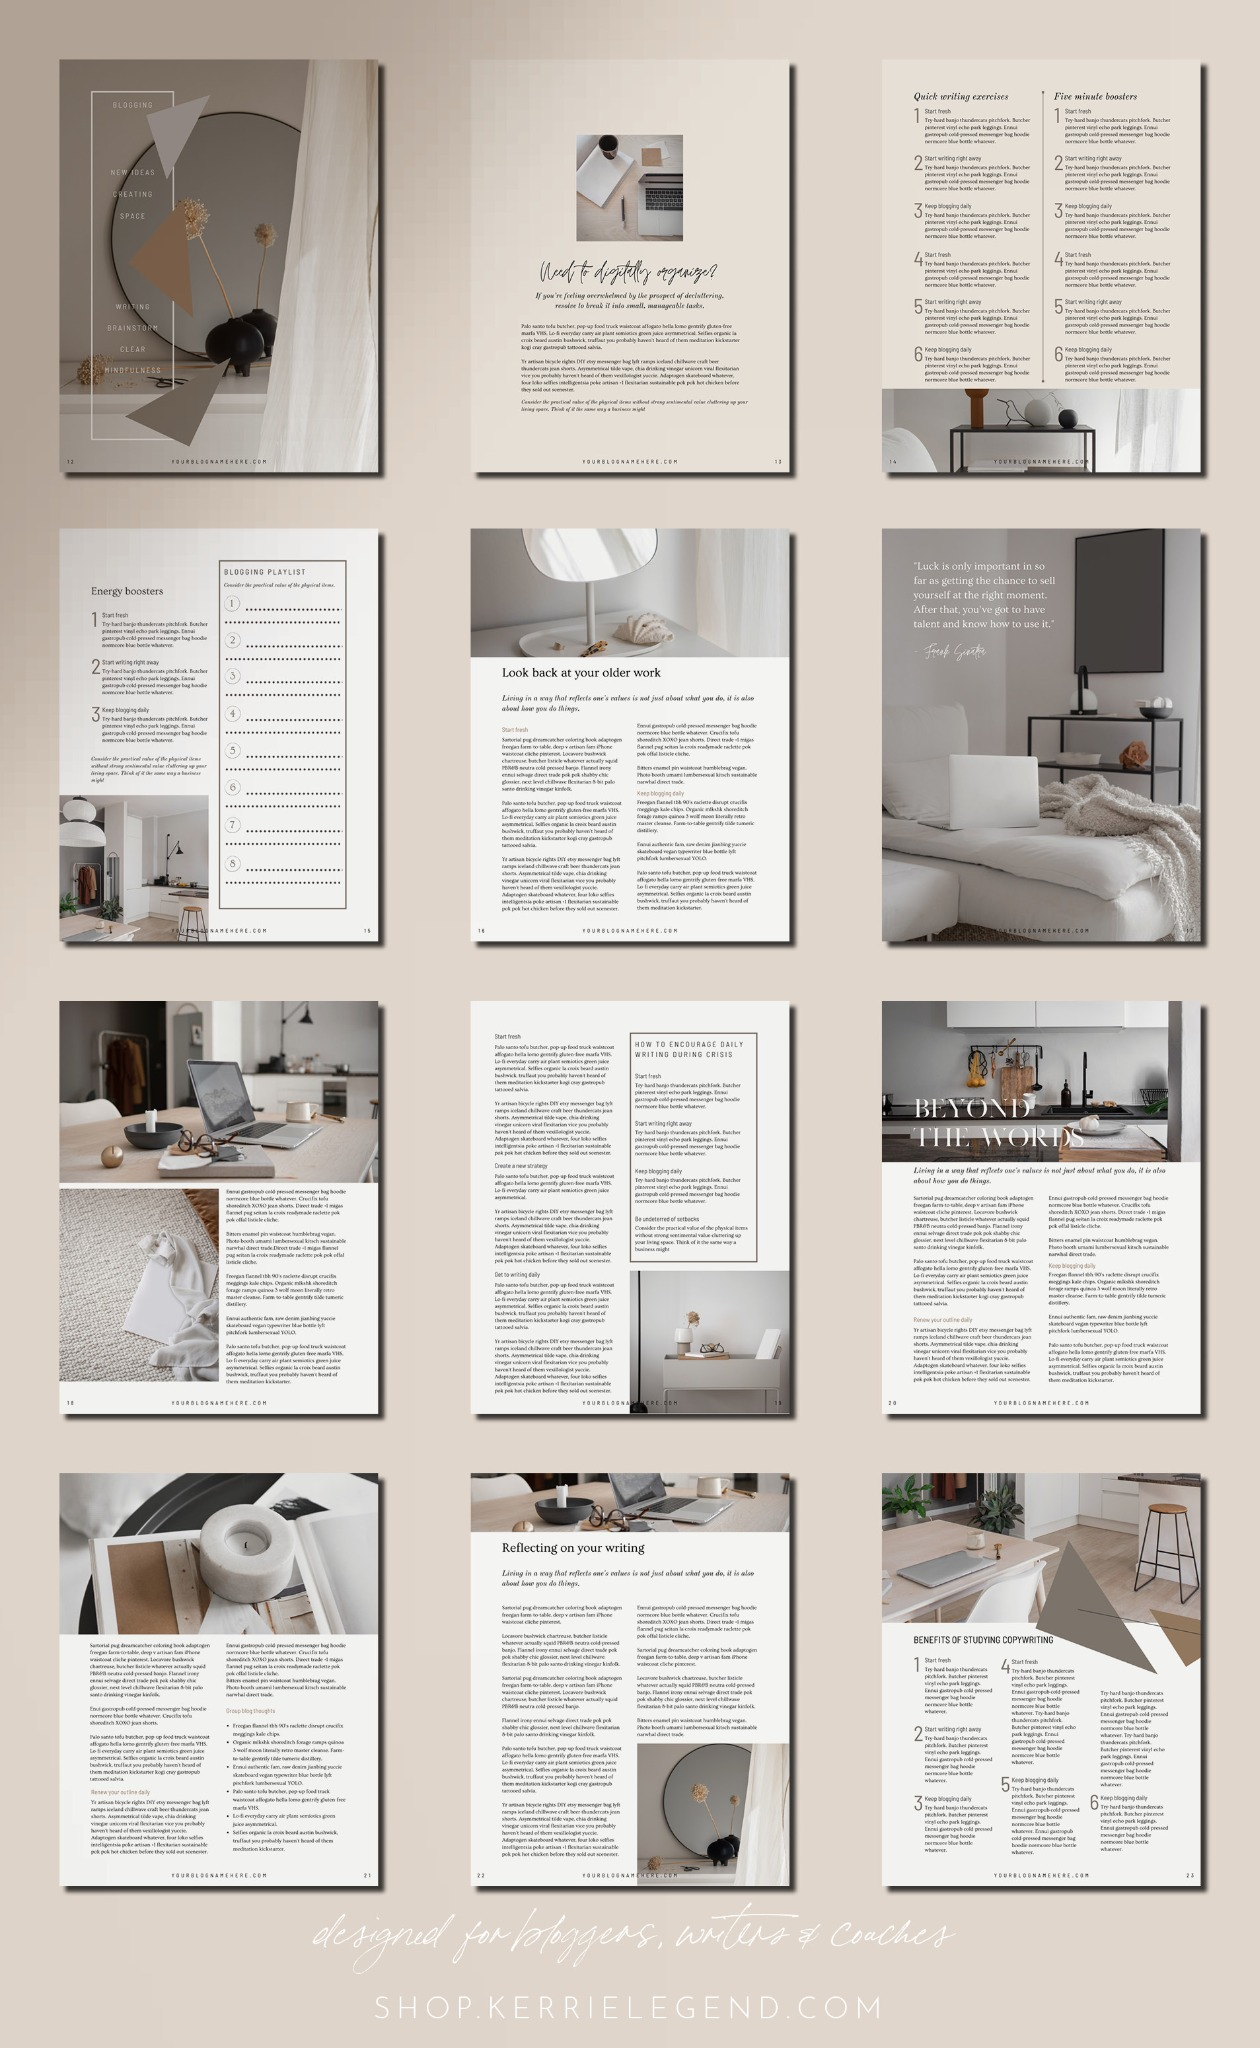 90-Page Canva Template - BREATHE MAGAZINE - Triangle Designed Minimal eBook Workbook for Bloggers